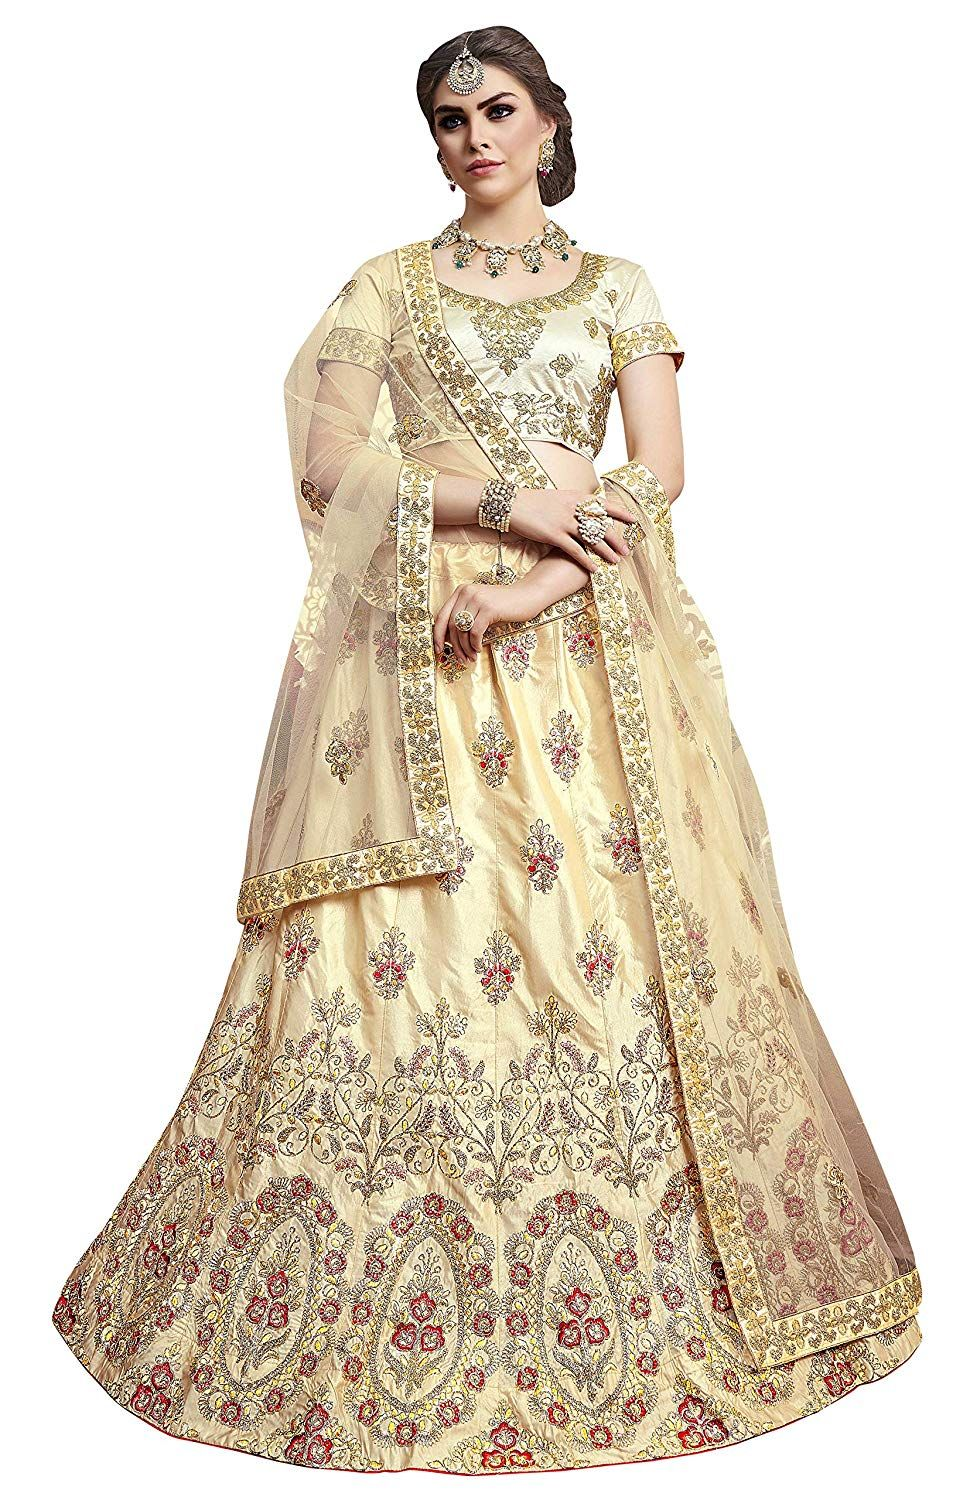 71d33483eb Manvaa Women'S Silk Embroidered Lehenga Choli In Beige Color: Amazon.in:  Clothing & Accessories